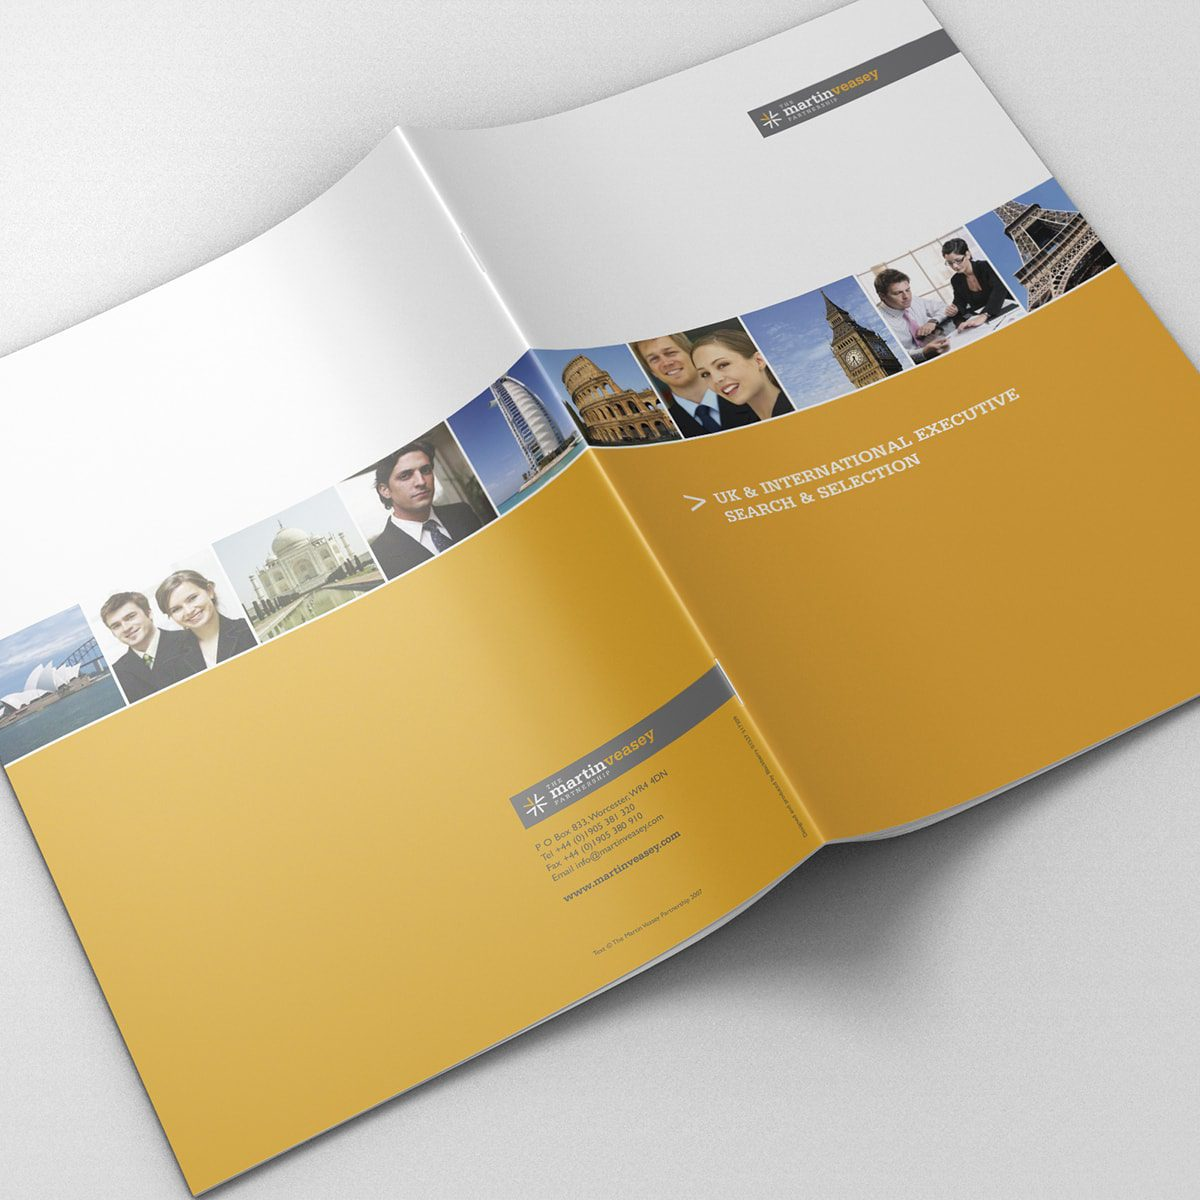 Martin Veasey Recruitment Brochure | Portfolio | Blackberry Design